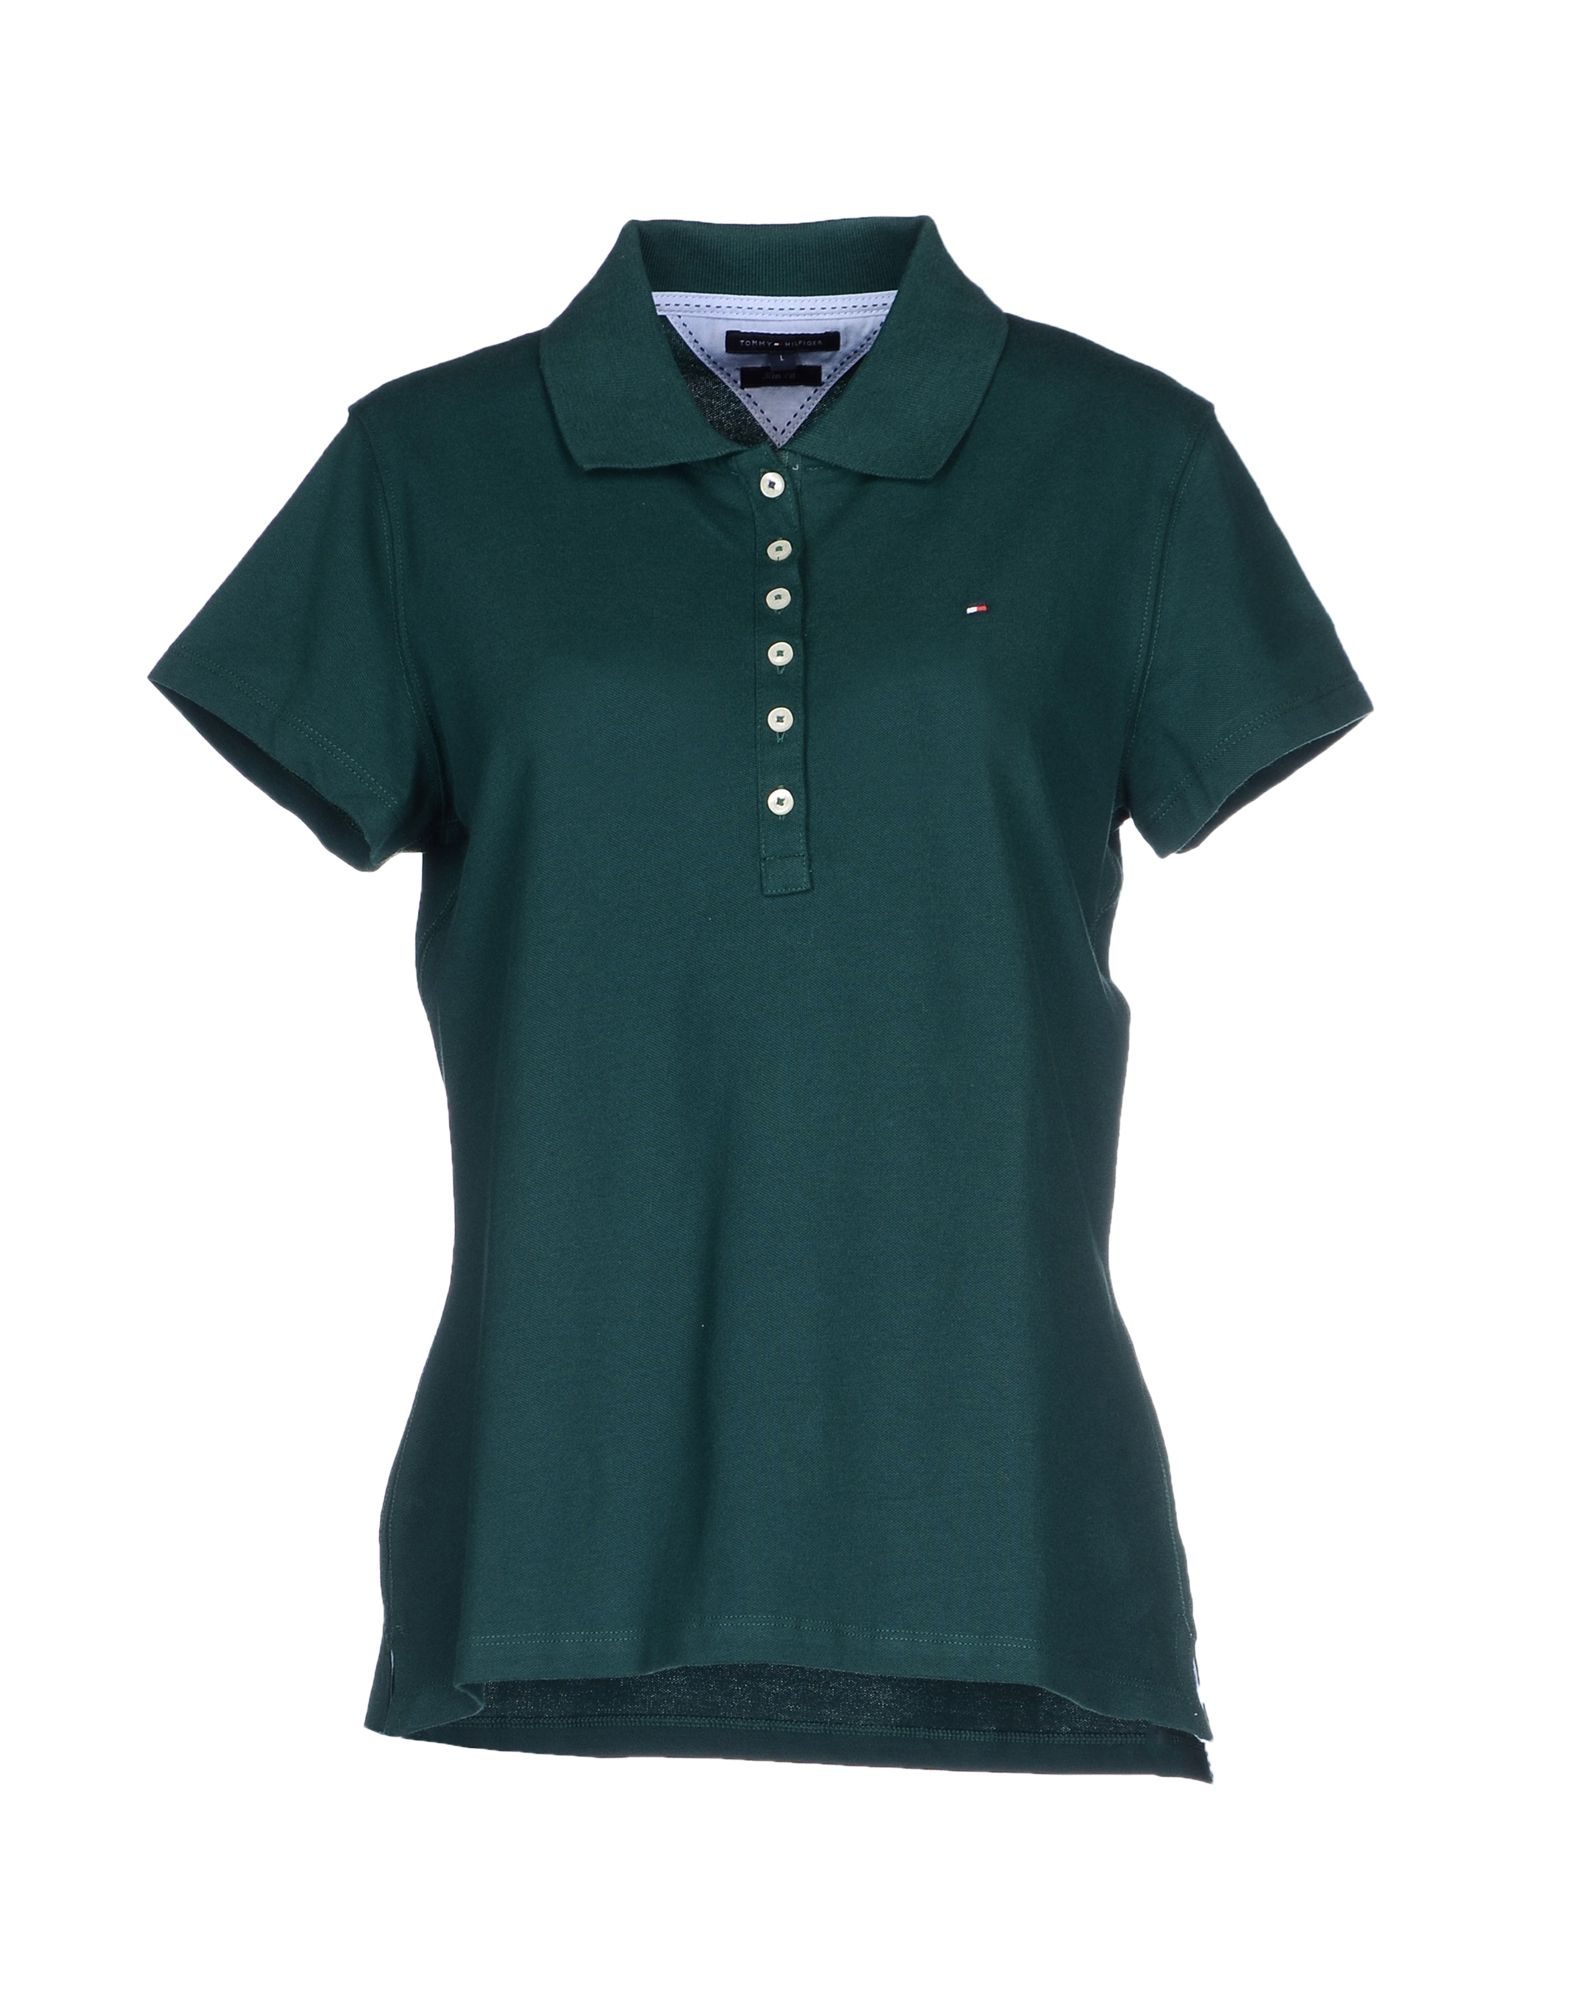 tommy hilfiger polo shirt in green dark green lyst. Black Bedroom Furniture Sets. Home Design Ideas